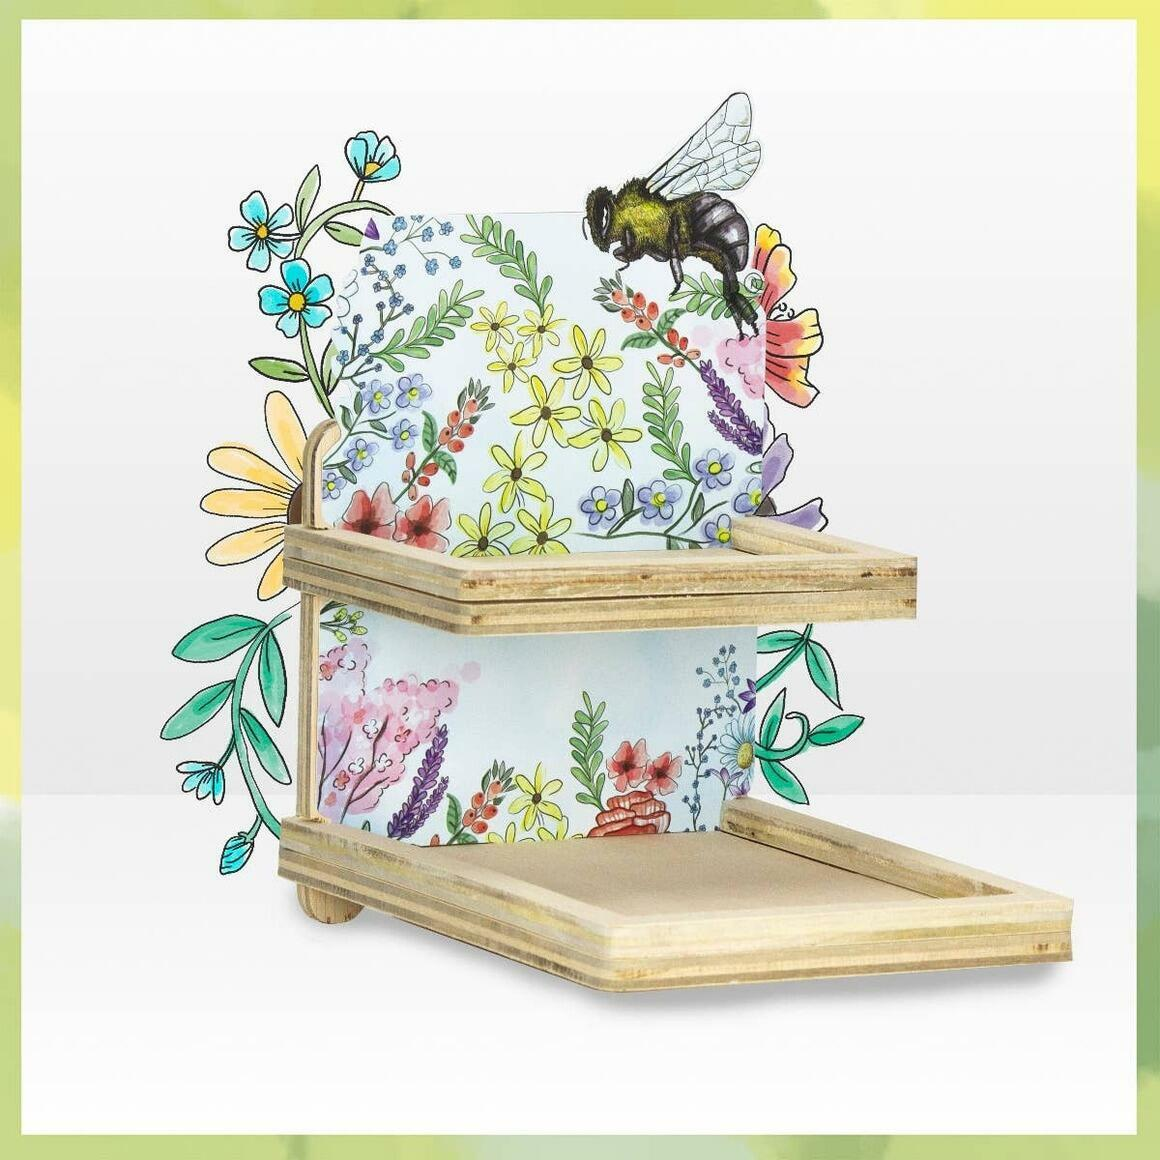 Small Wooden Display - does not include product | Trada Marketplace